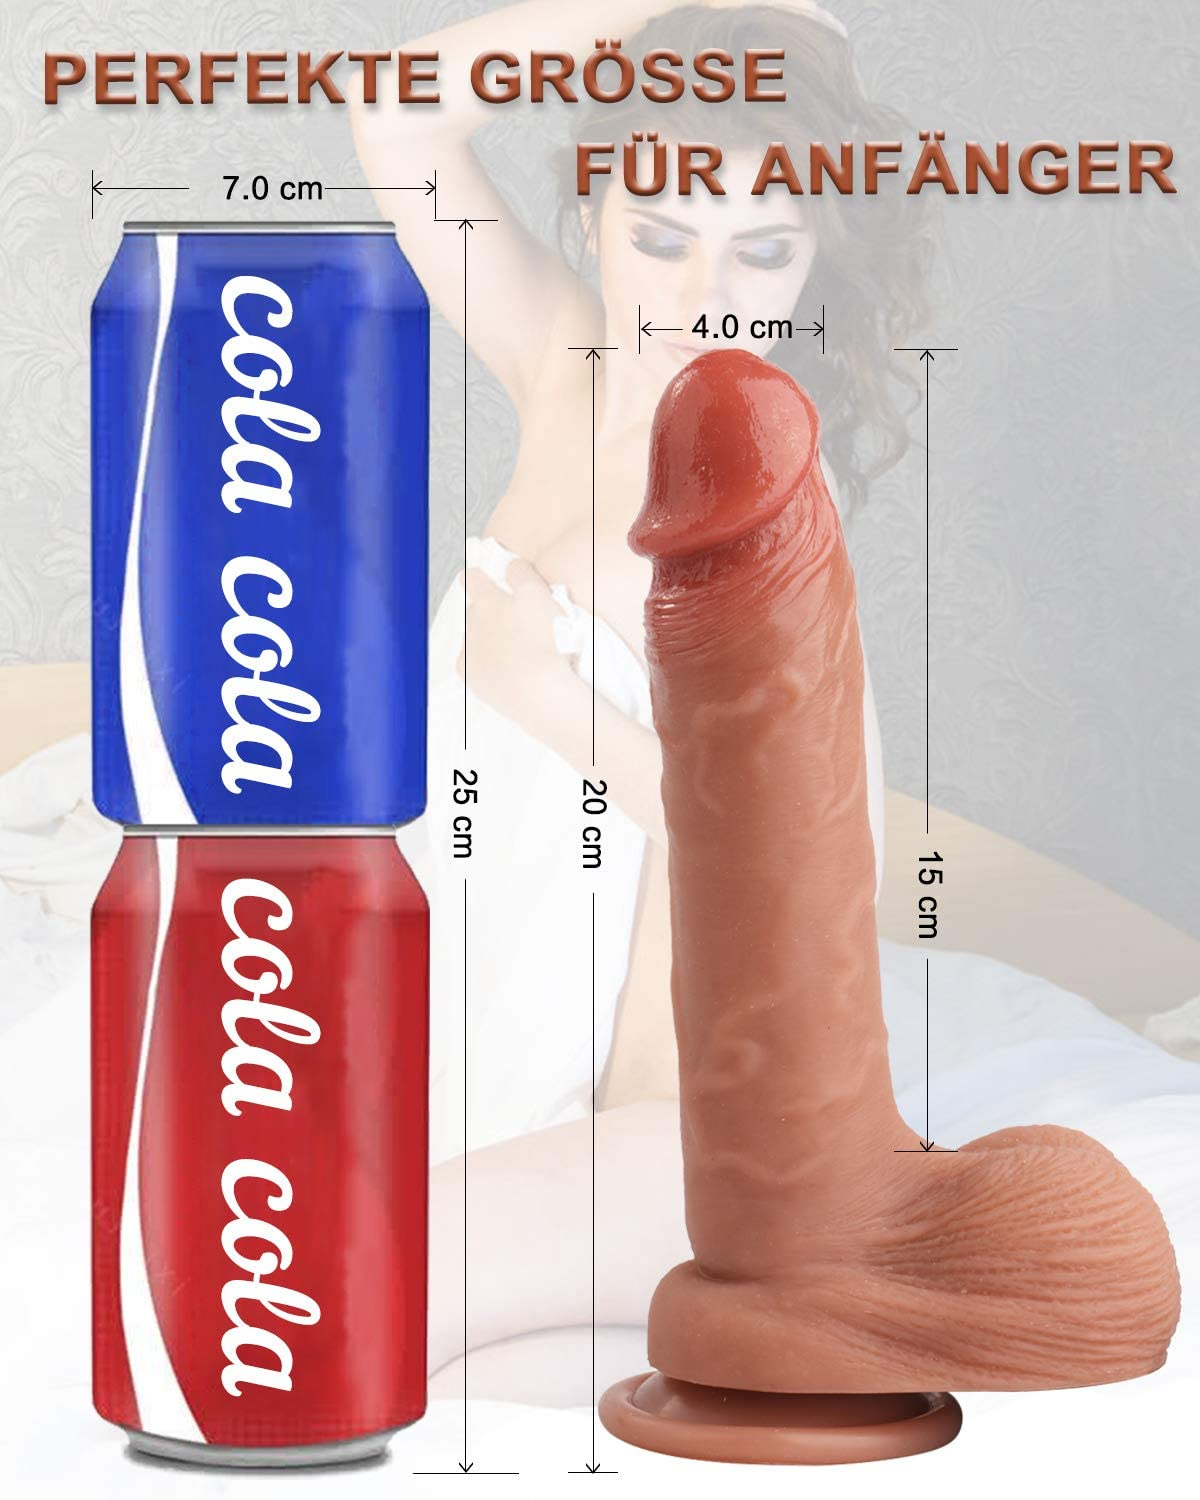 Acvioo 7.7 Inch Realistic Silicone Dildo for Beginners